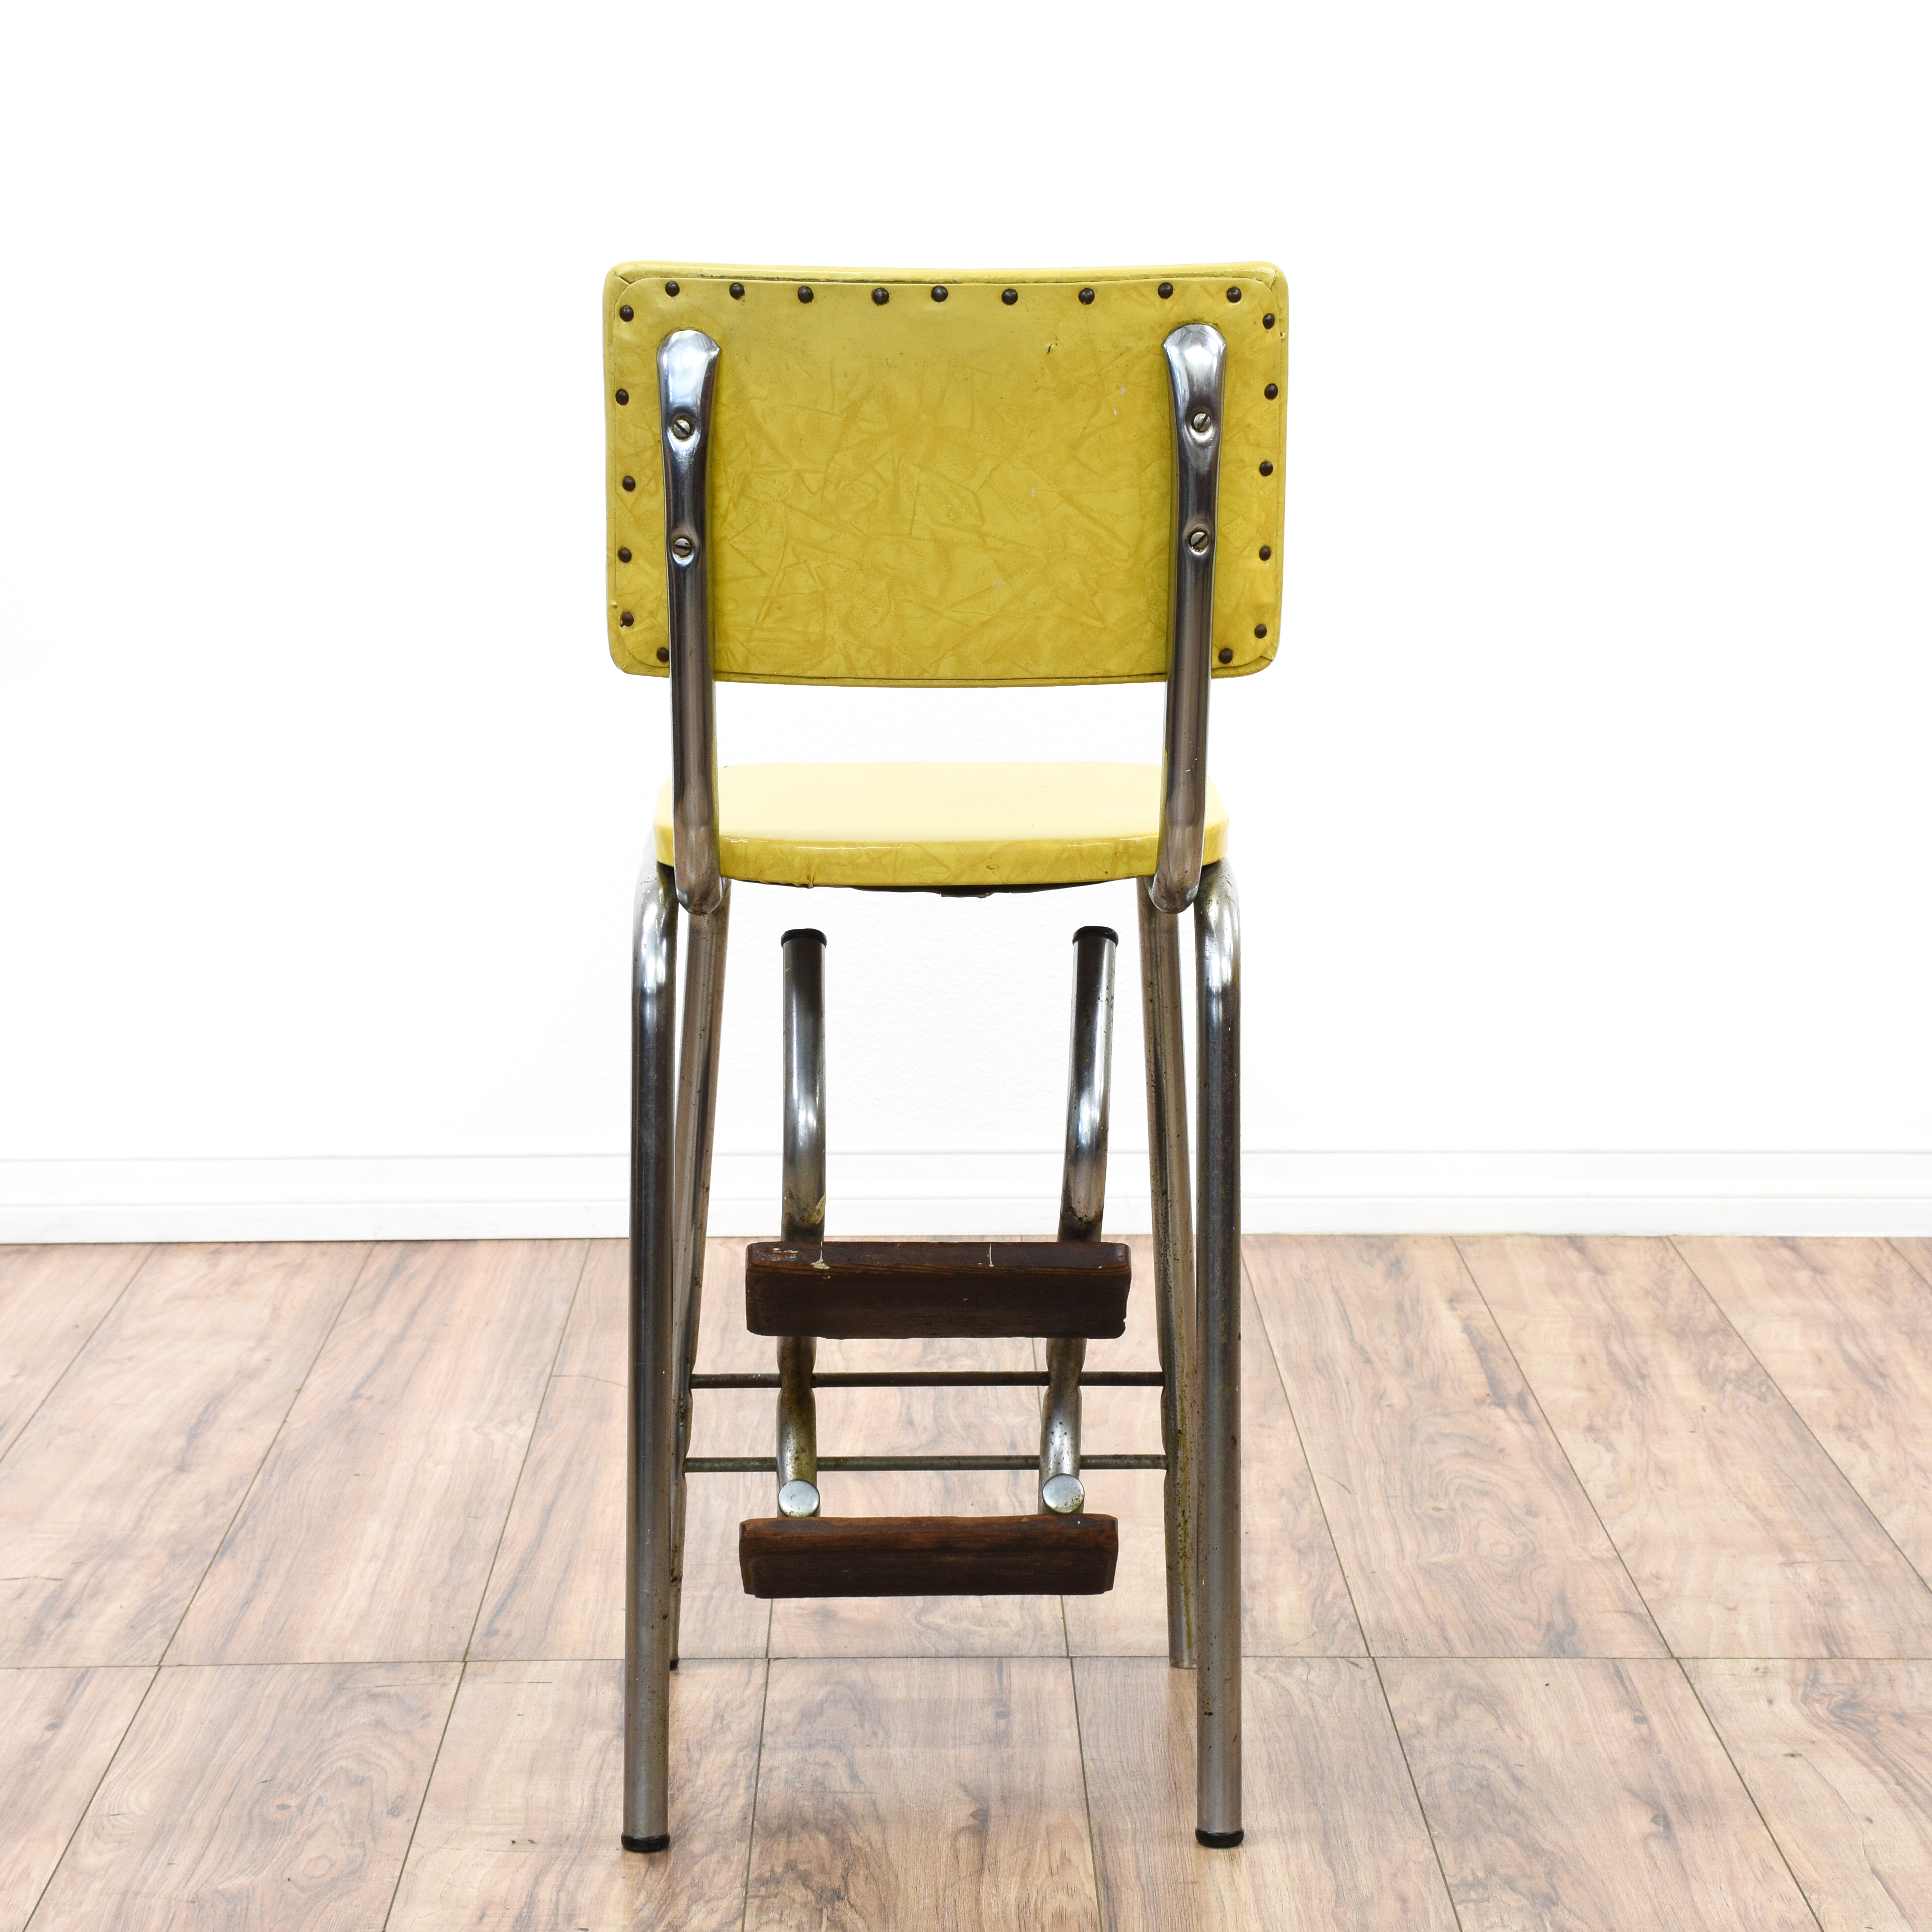 old fashioned kitchen chair step stool cool gadgets retro industrial yellow loveseat vintage